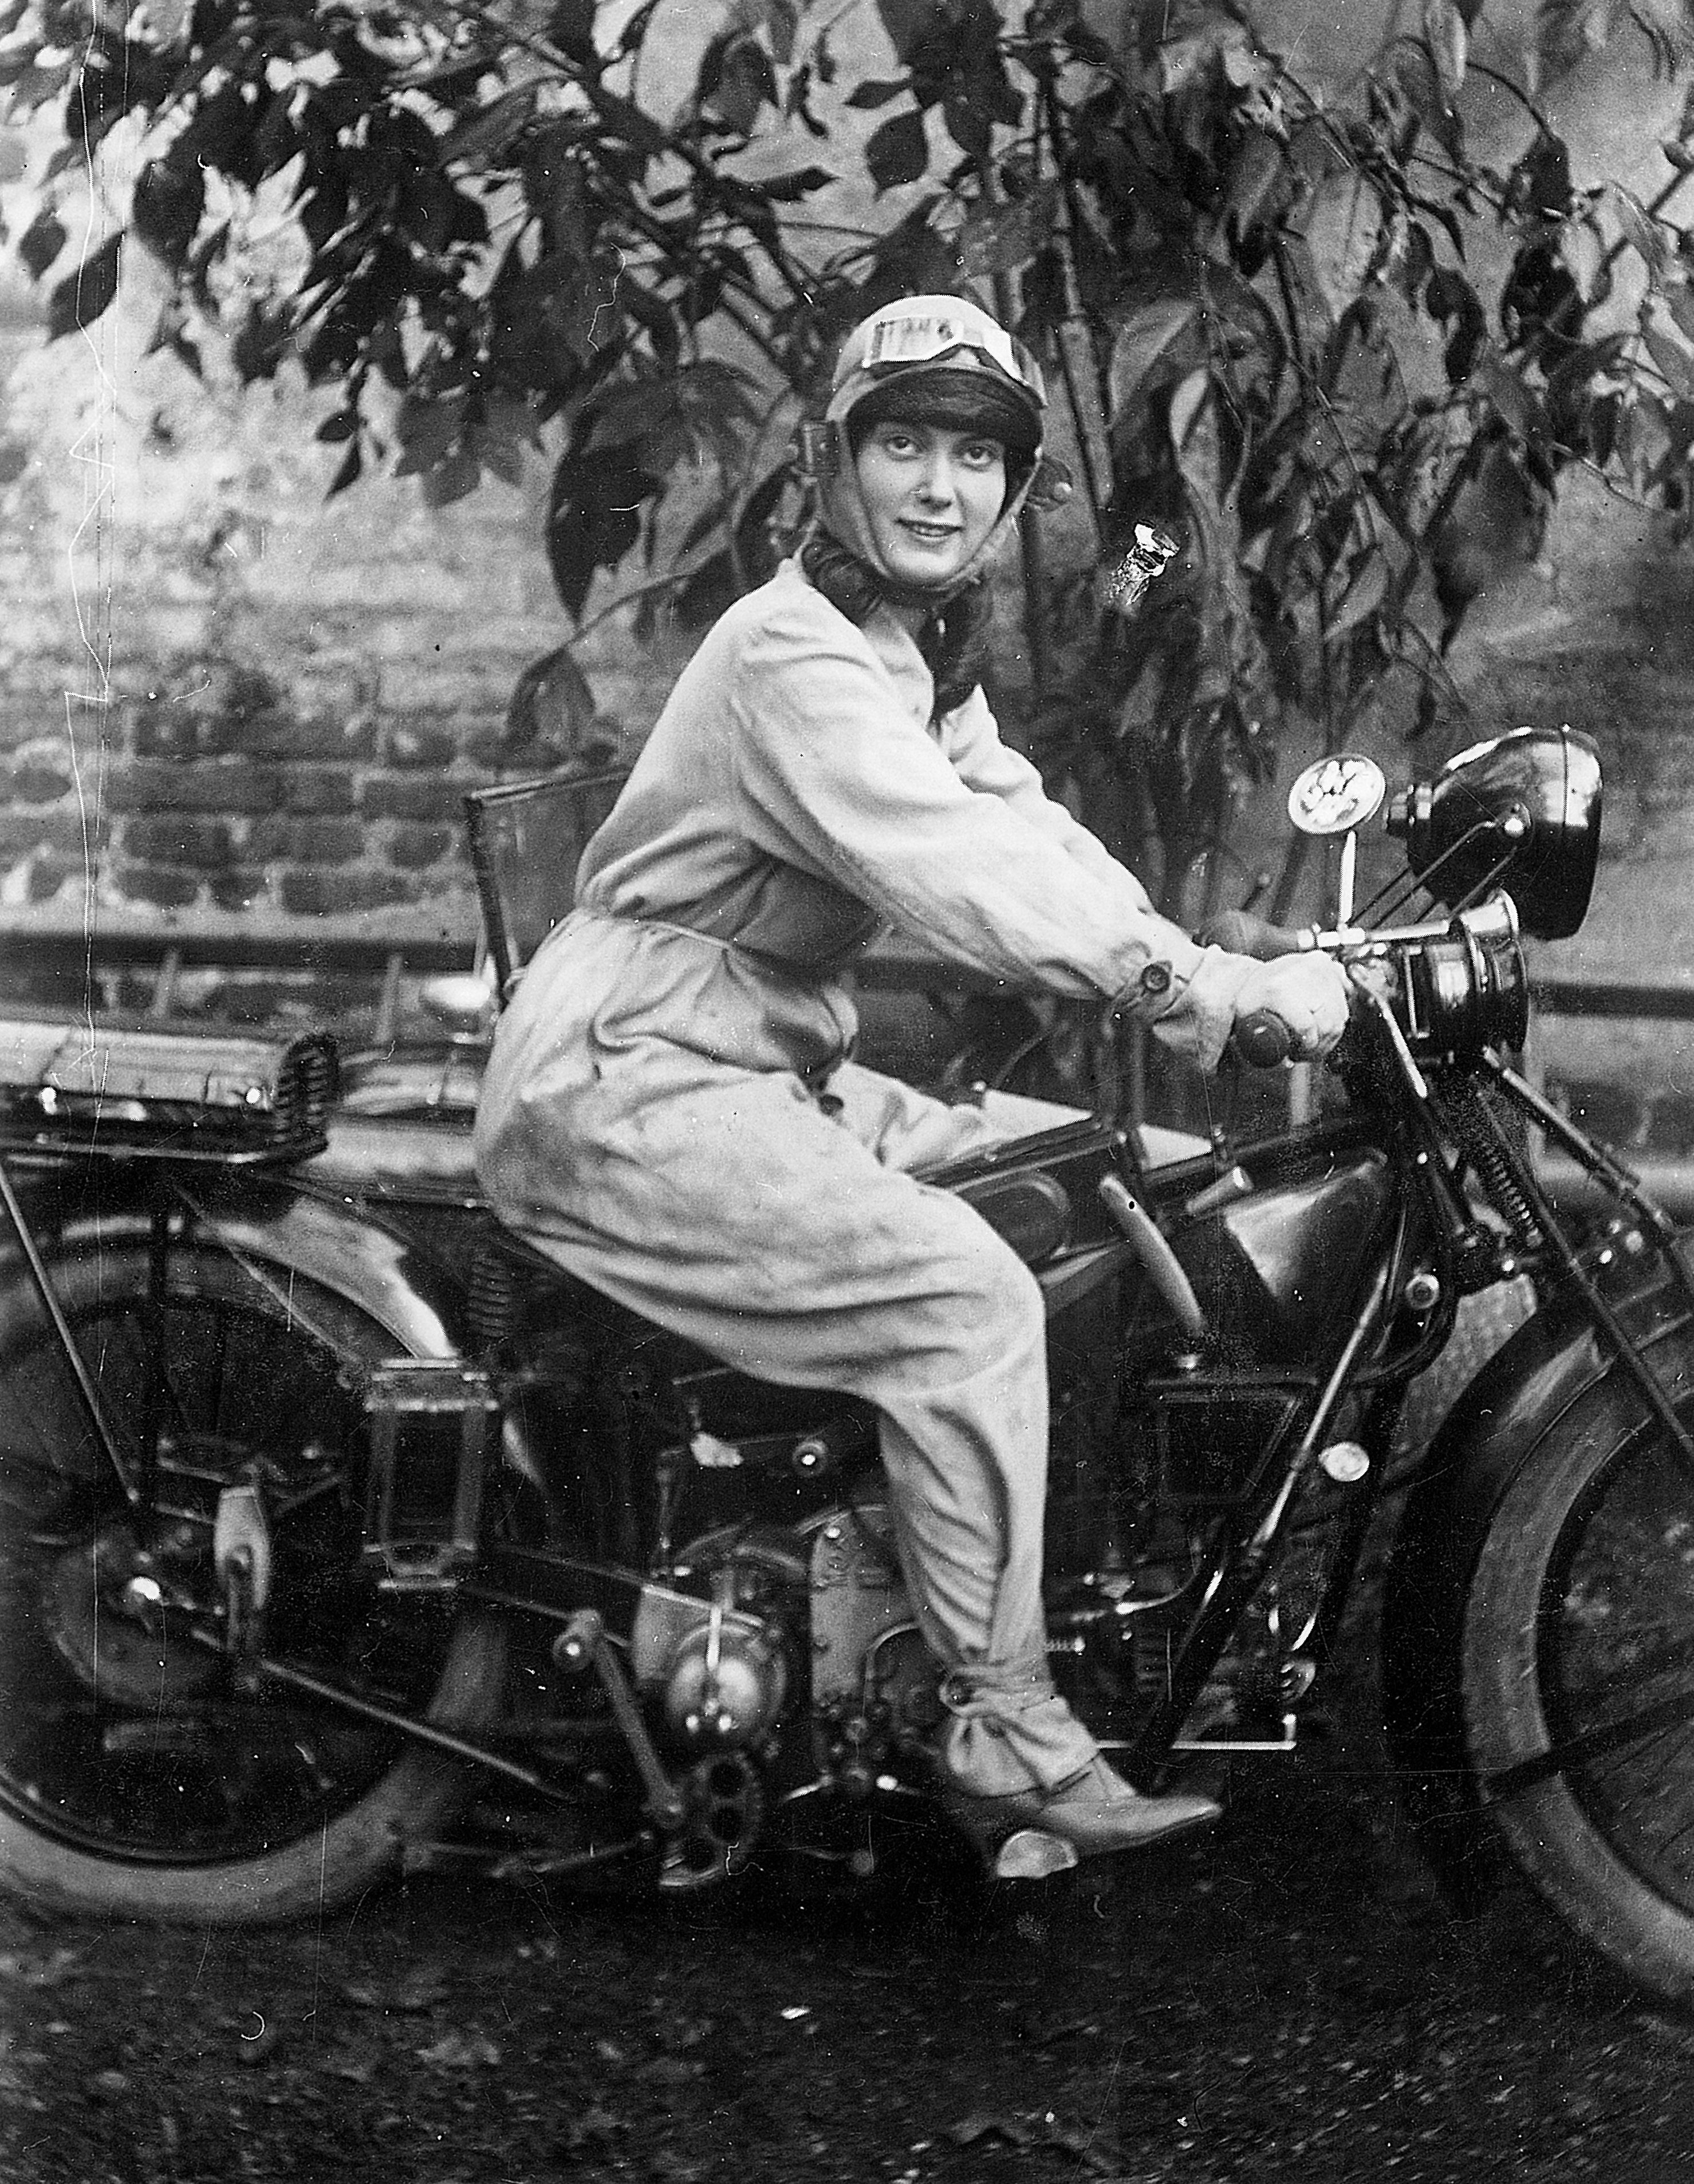 1945 – 350cc G3L Matchless motorcycle